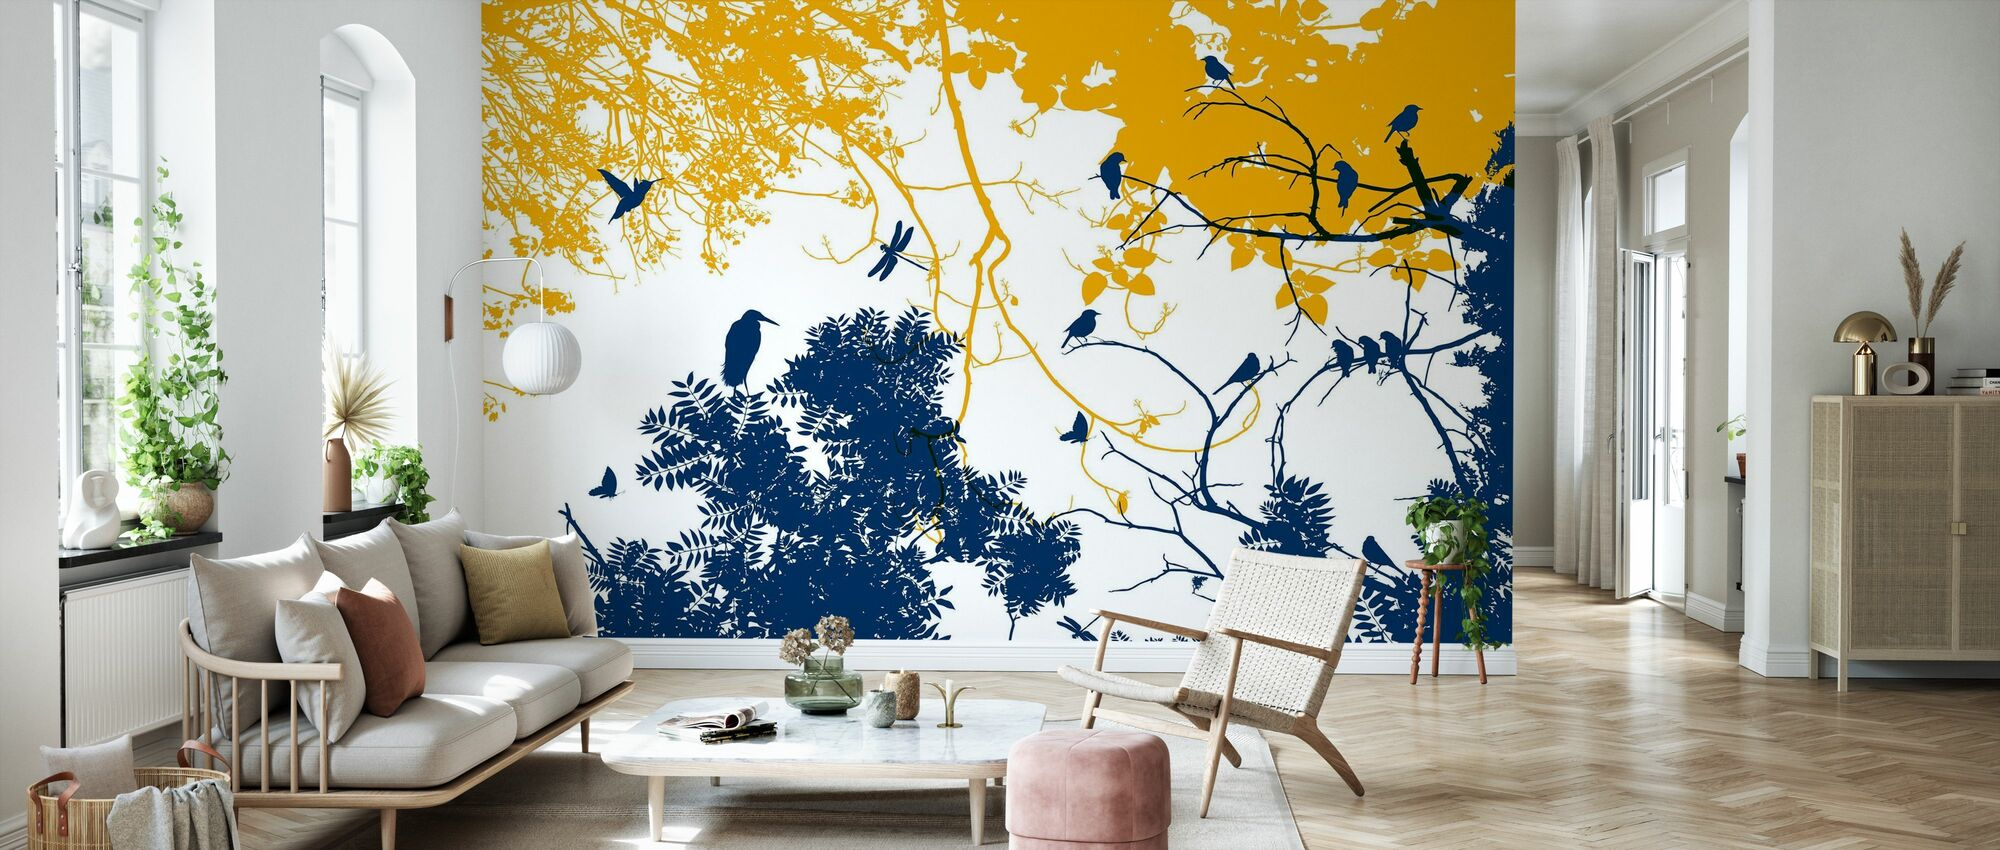 Silhouetto - Wallpaper - Living Room